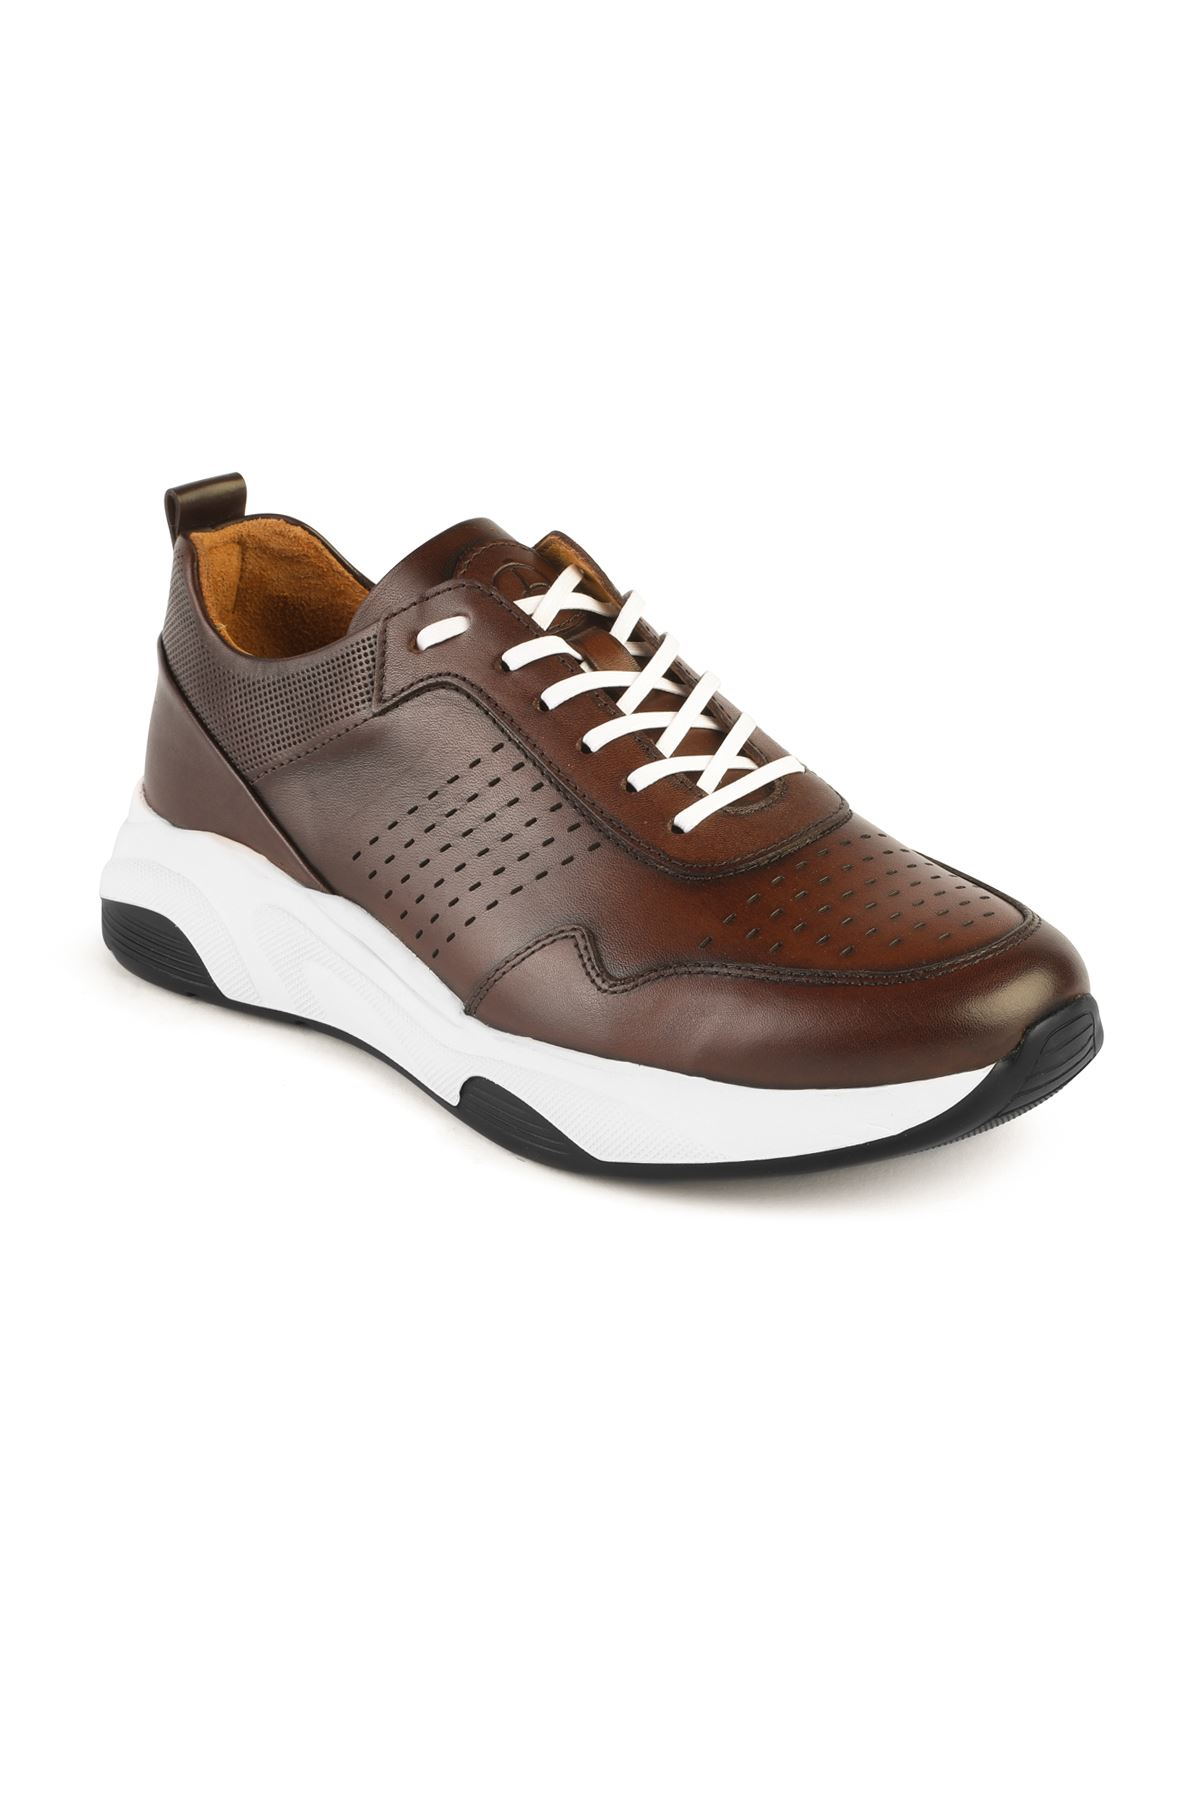 Libero 3313 Brown Sports Shoes